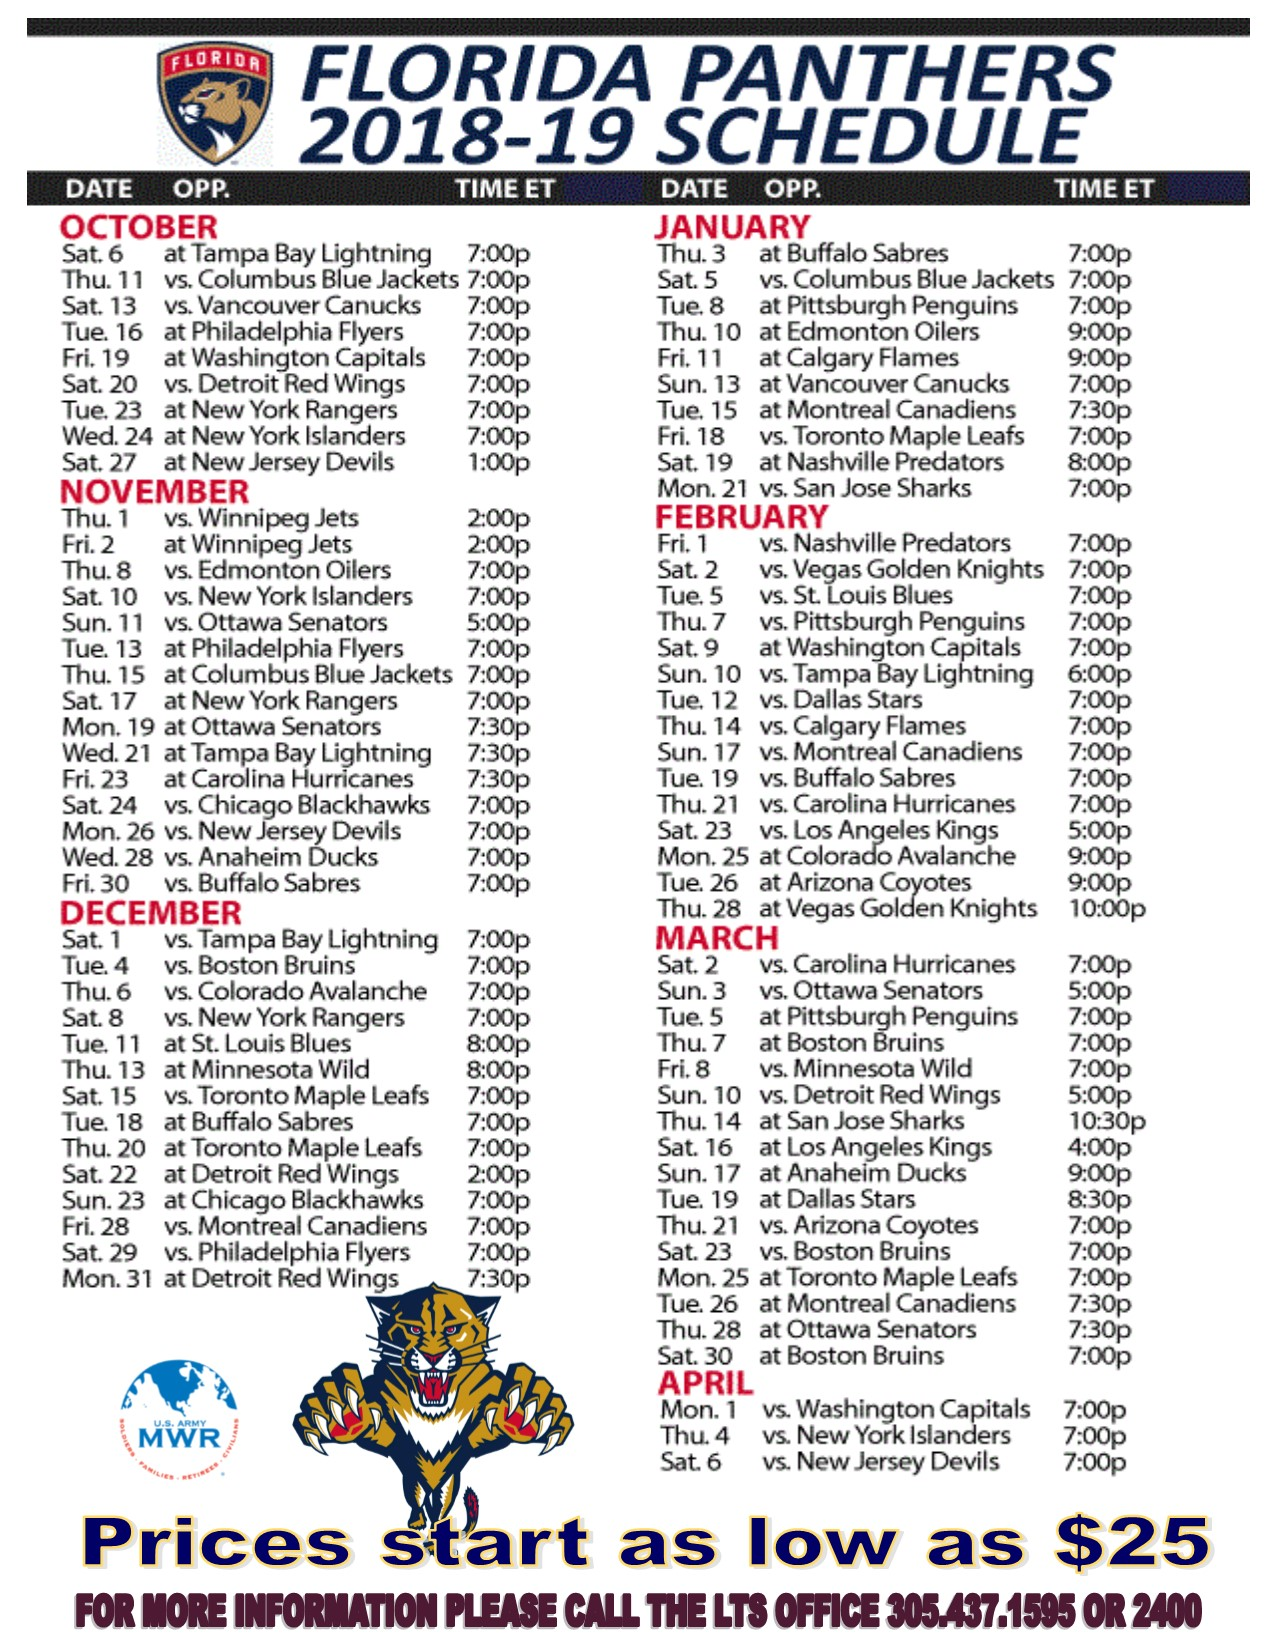 PANTHER TICKETS